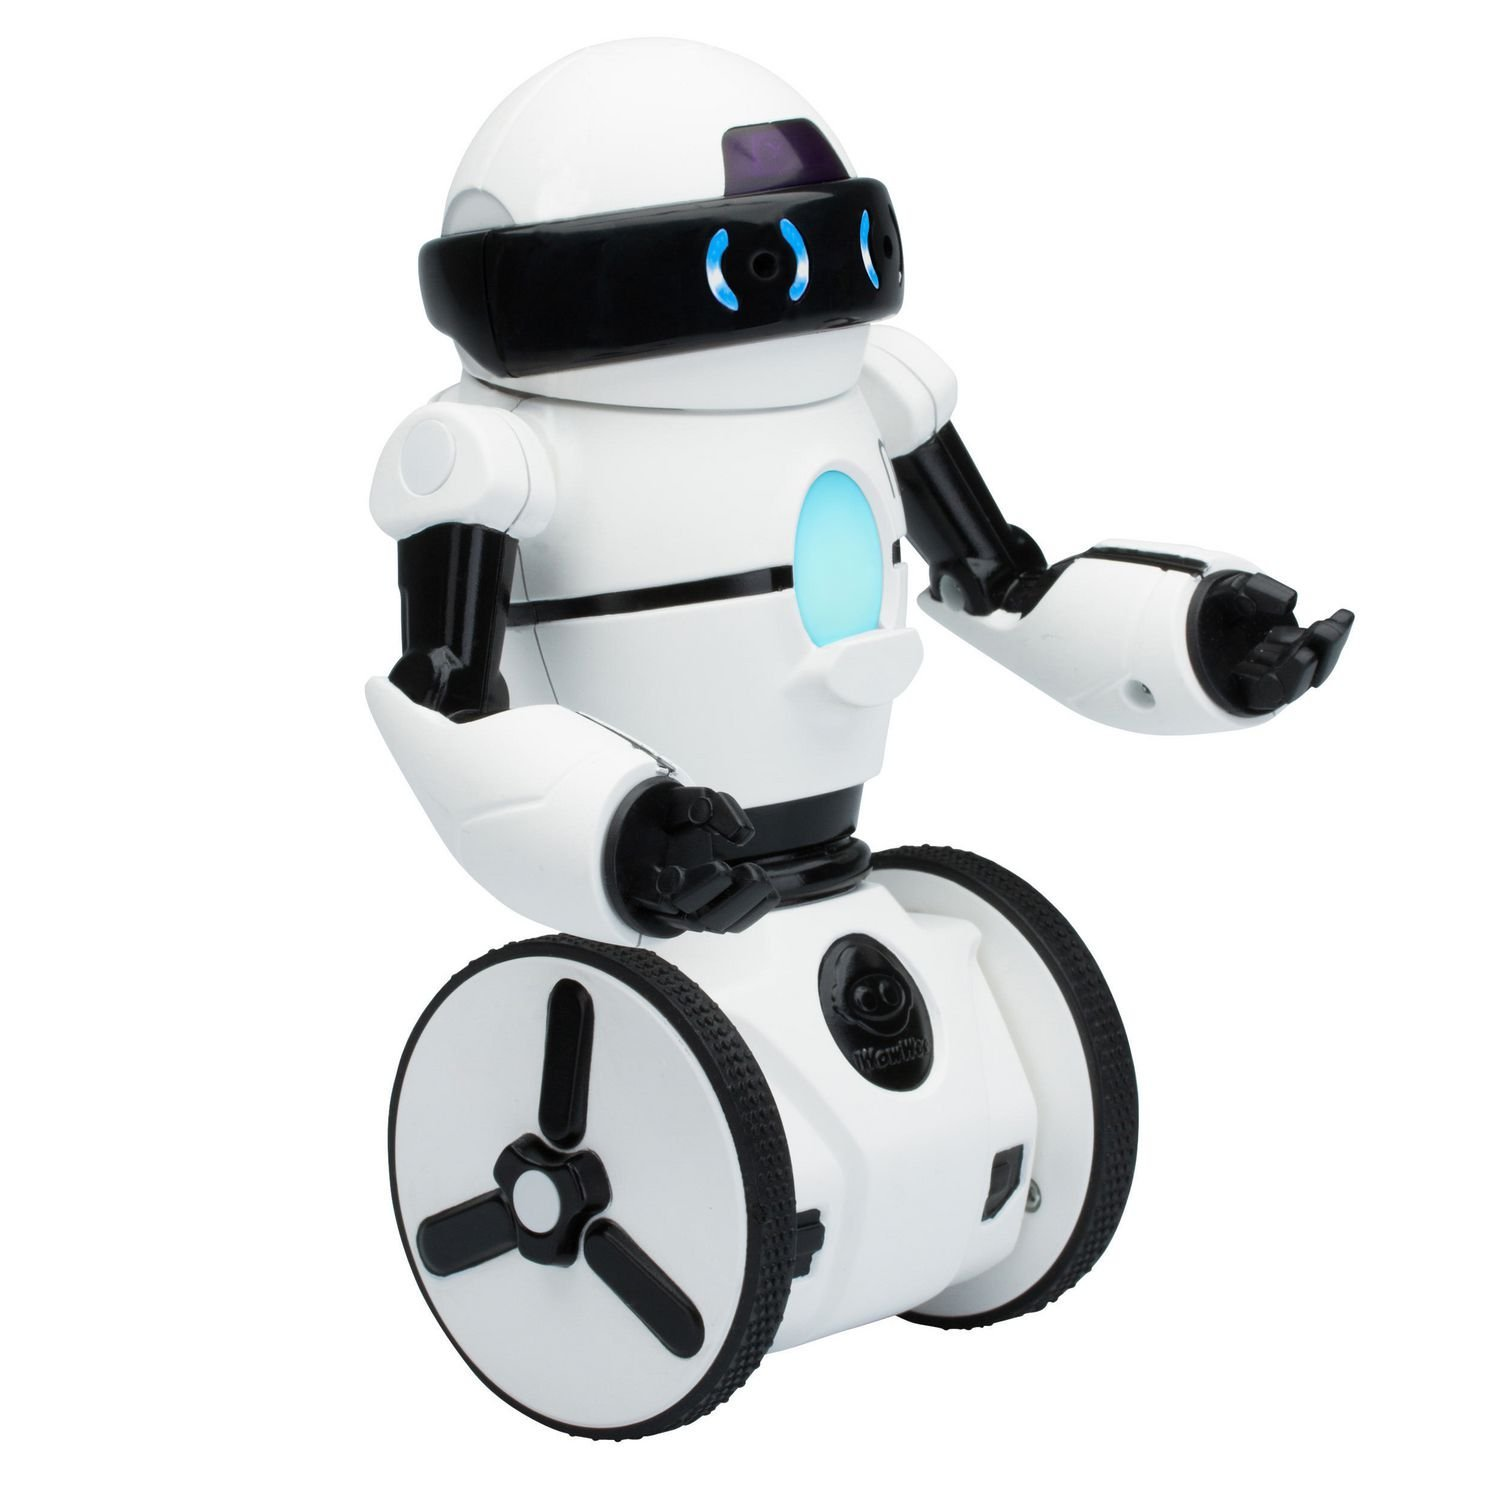 Robot-kits-for-adults